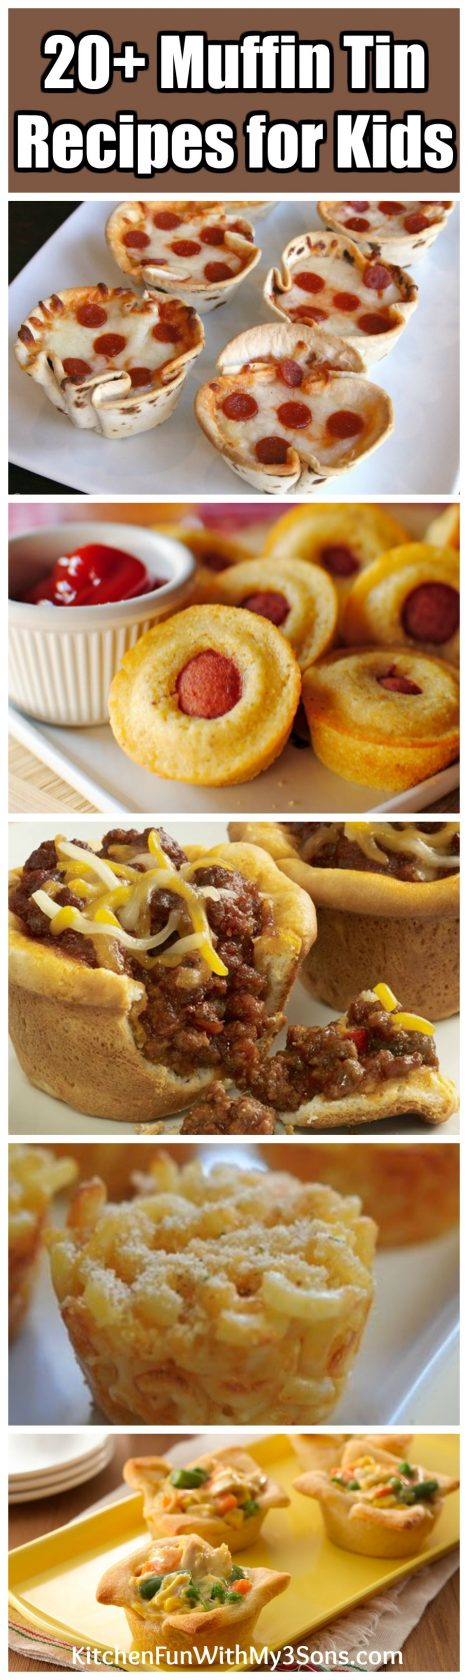 freestufffinder as well Muffin Tin Recipes Kids as well How To Diy Crunchy Nacho Crusted Crescent Dog together with 100 Best Halloween Foods in addition Happy Halloween 3 Gemakkelijke Hapjes. on pillsbury corn dogs